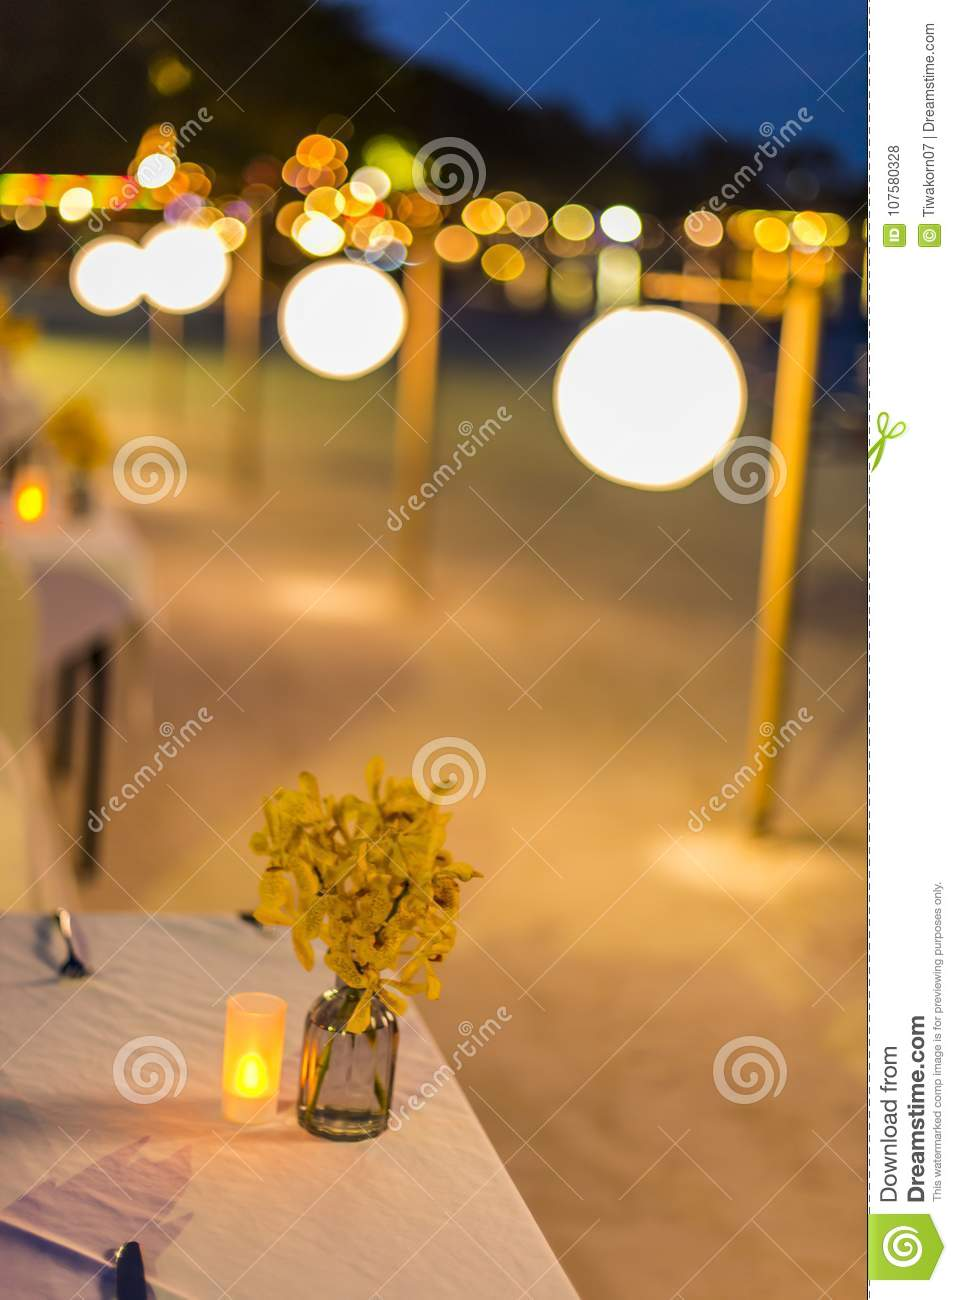 Abstract Blur Image Of Outdoor Cafe Or Restaurant In Night Time With Bokeh For Background Usage Stock Photo Image Of Bokeh Cuisine 107580328